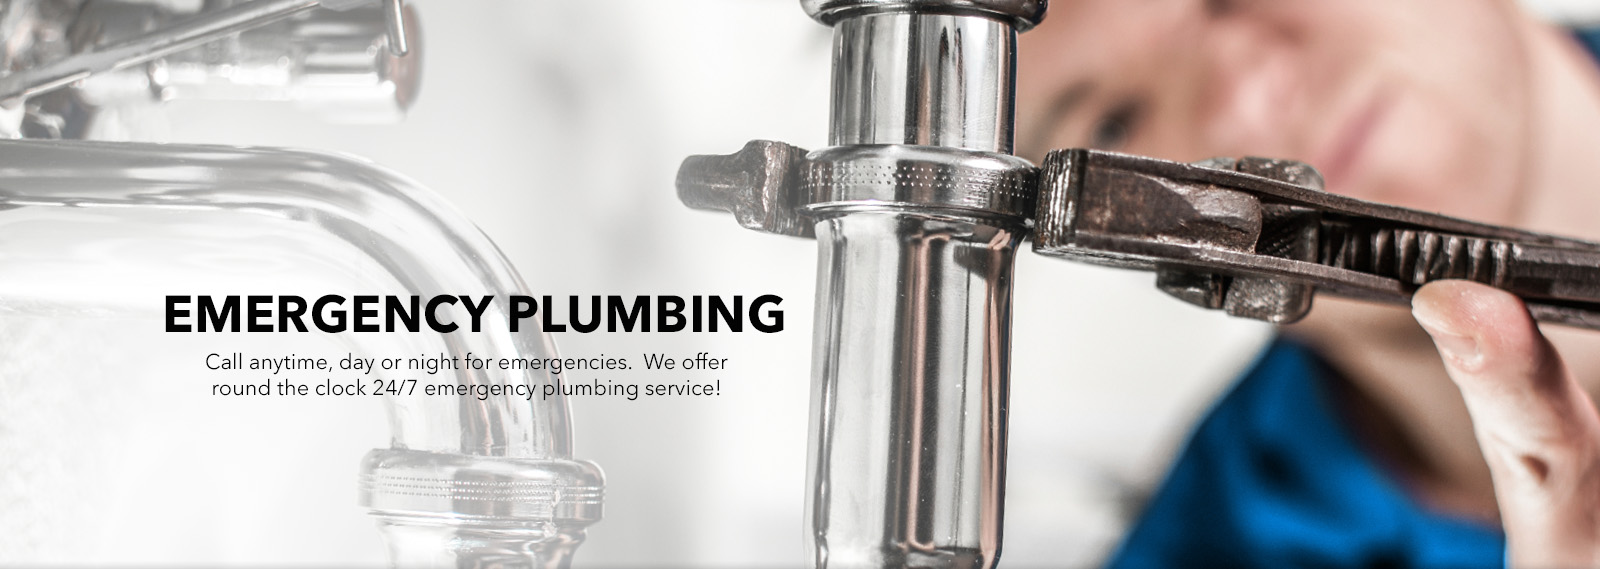 Plumbers Conyers Georgia Plumbing Contractor In Covington Georgia